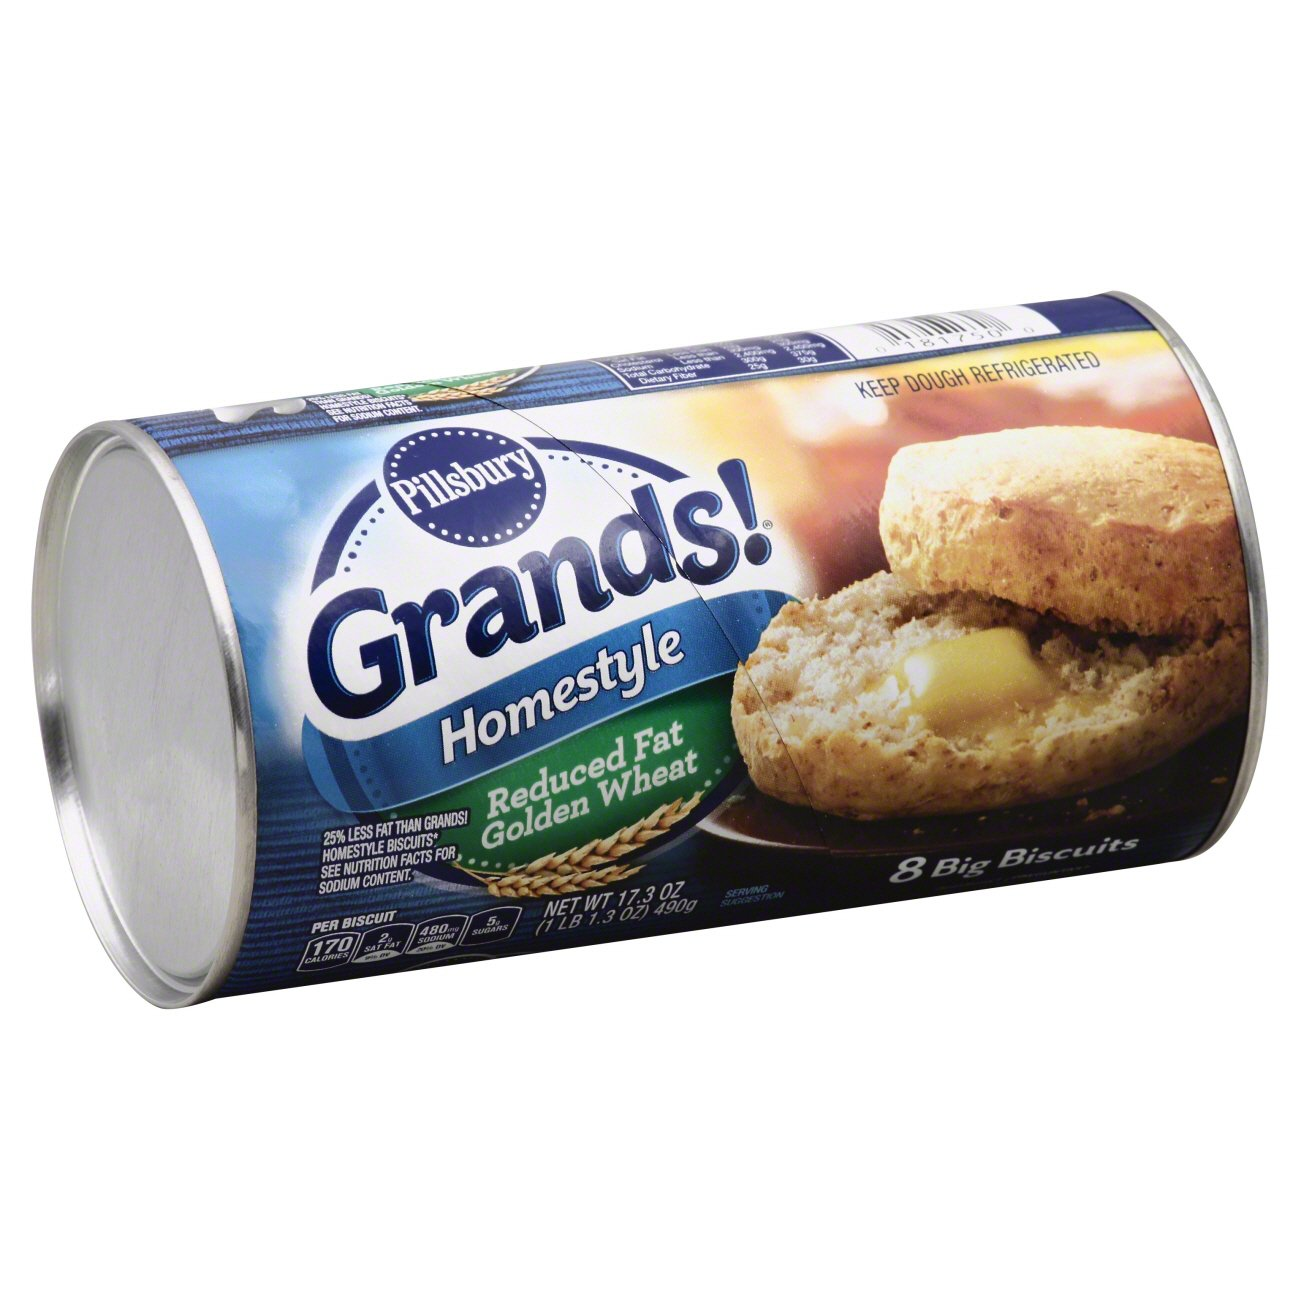 Pillsbury Grands Big Homestyle Reduced Fat Golden Wheat Biscuits